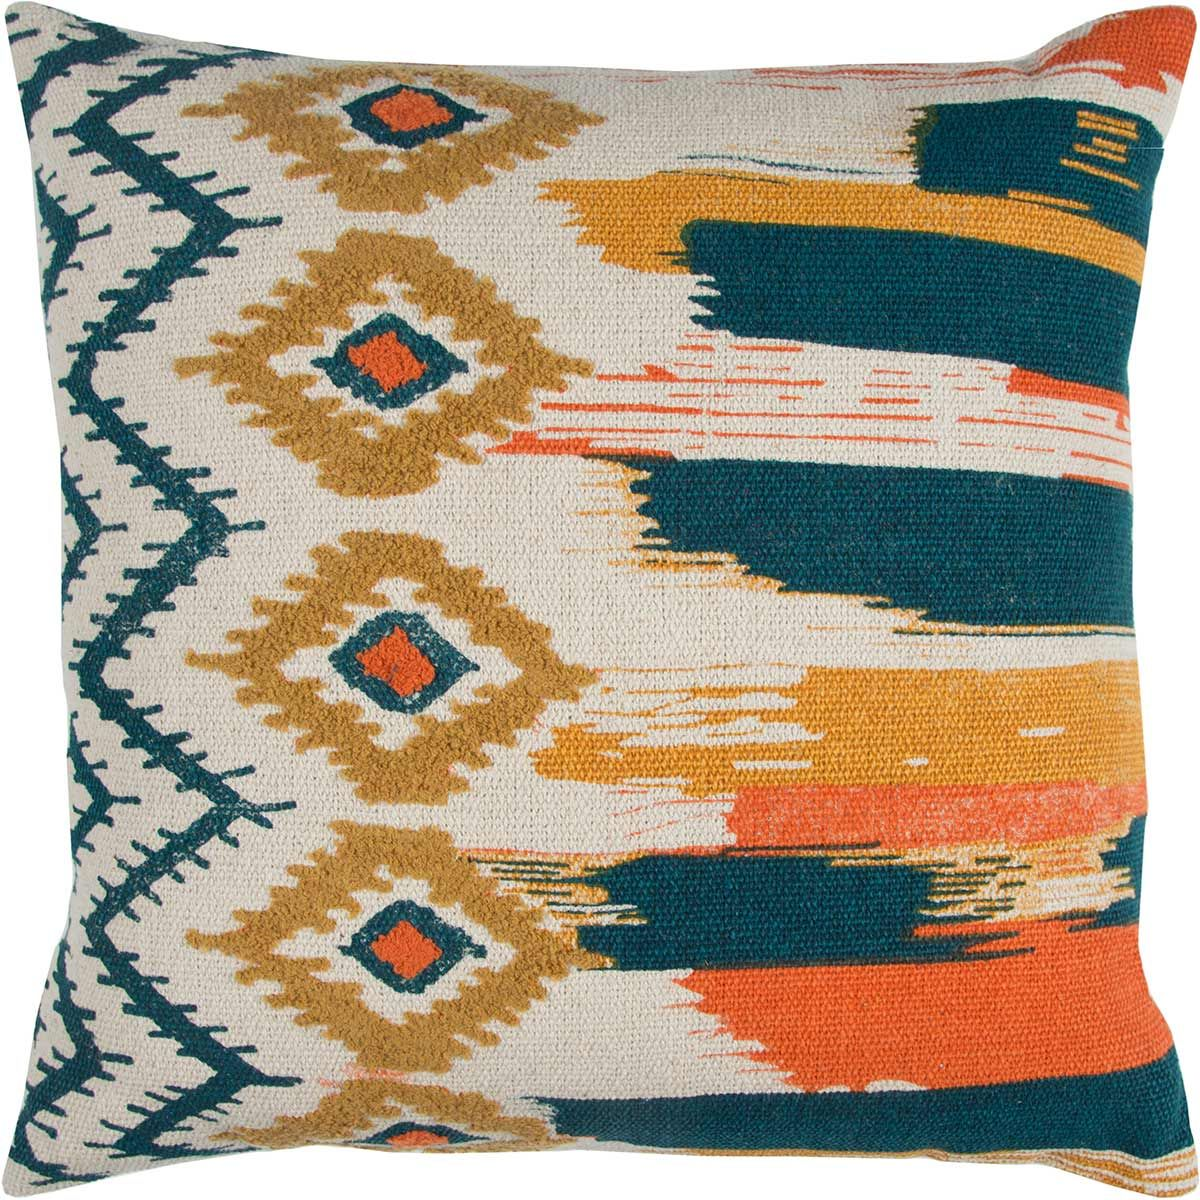 Tribal Brushstrokes Pillow - Navy